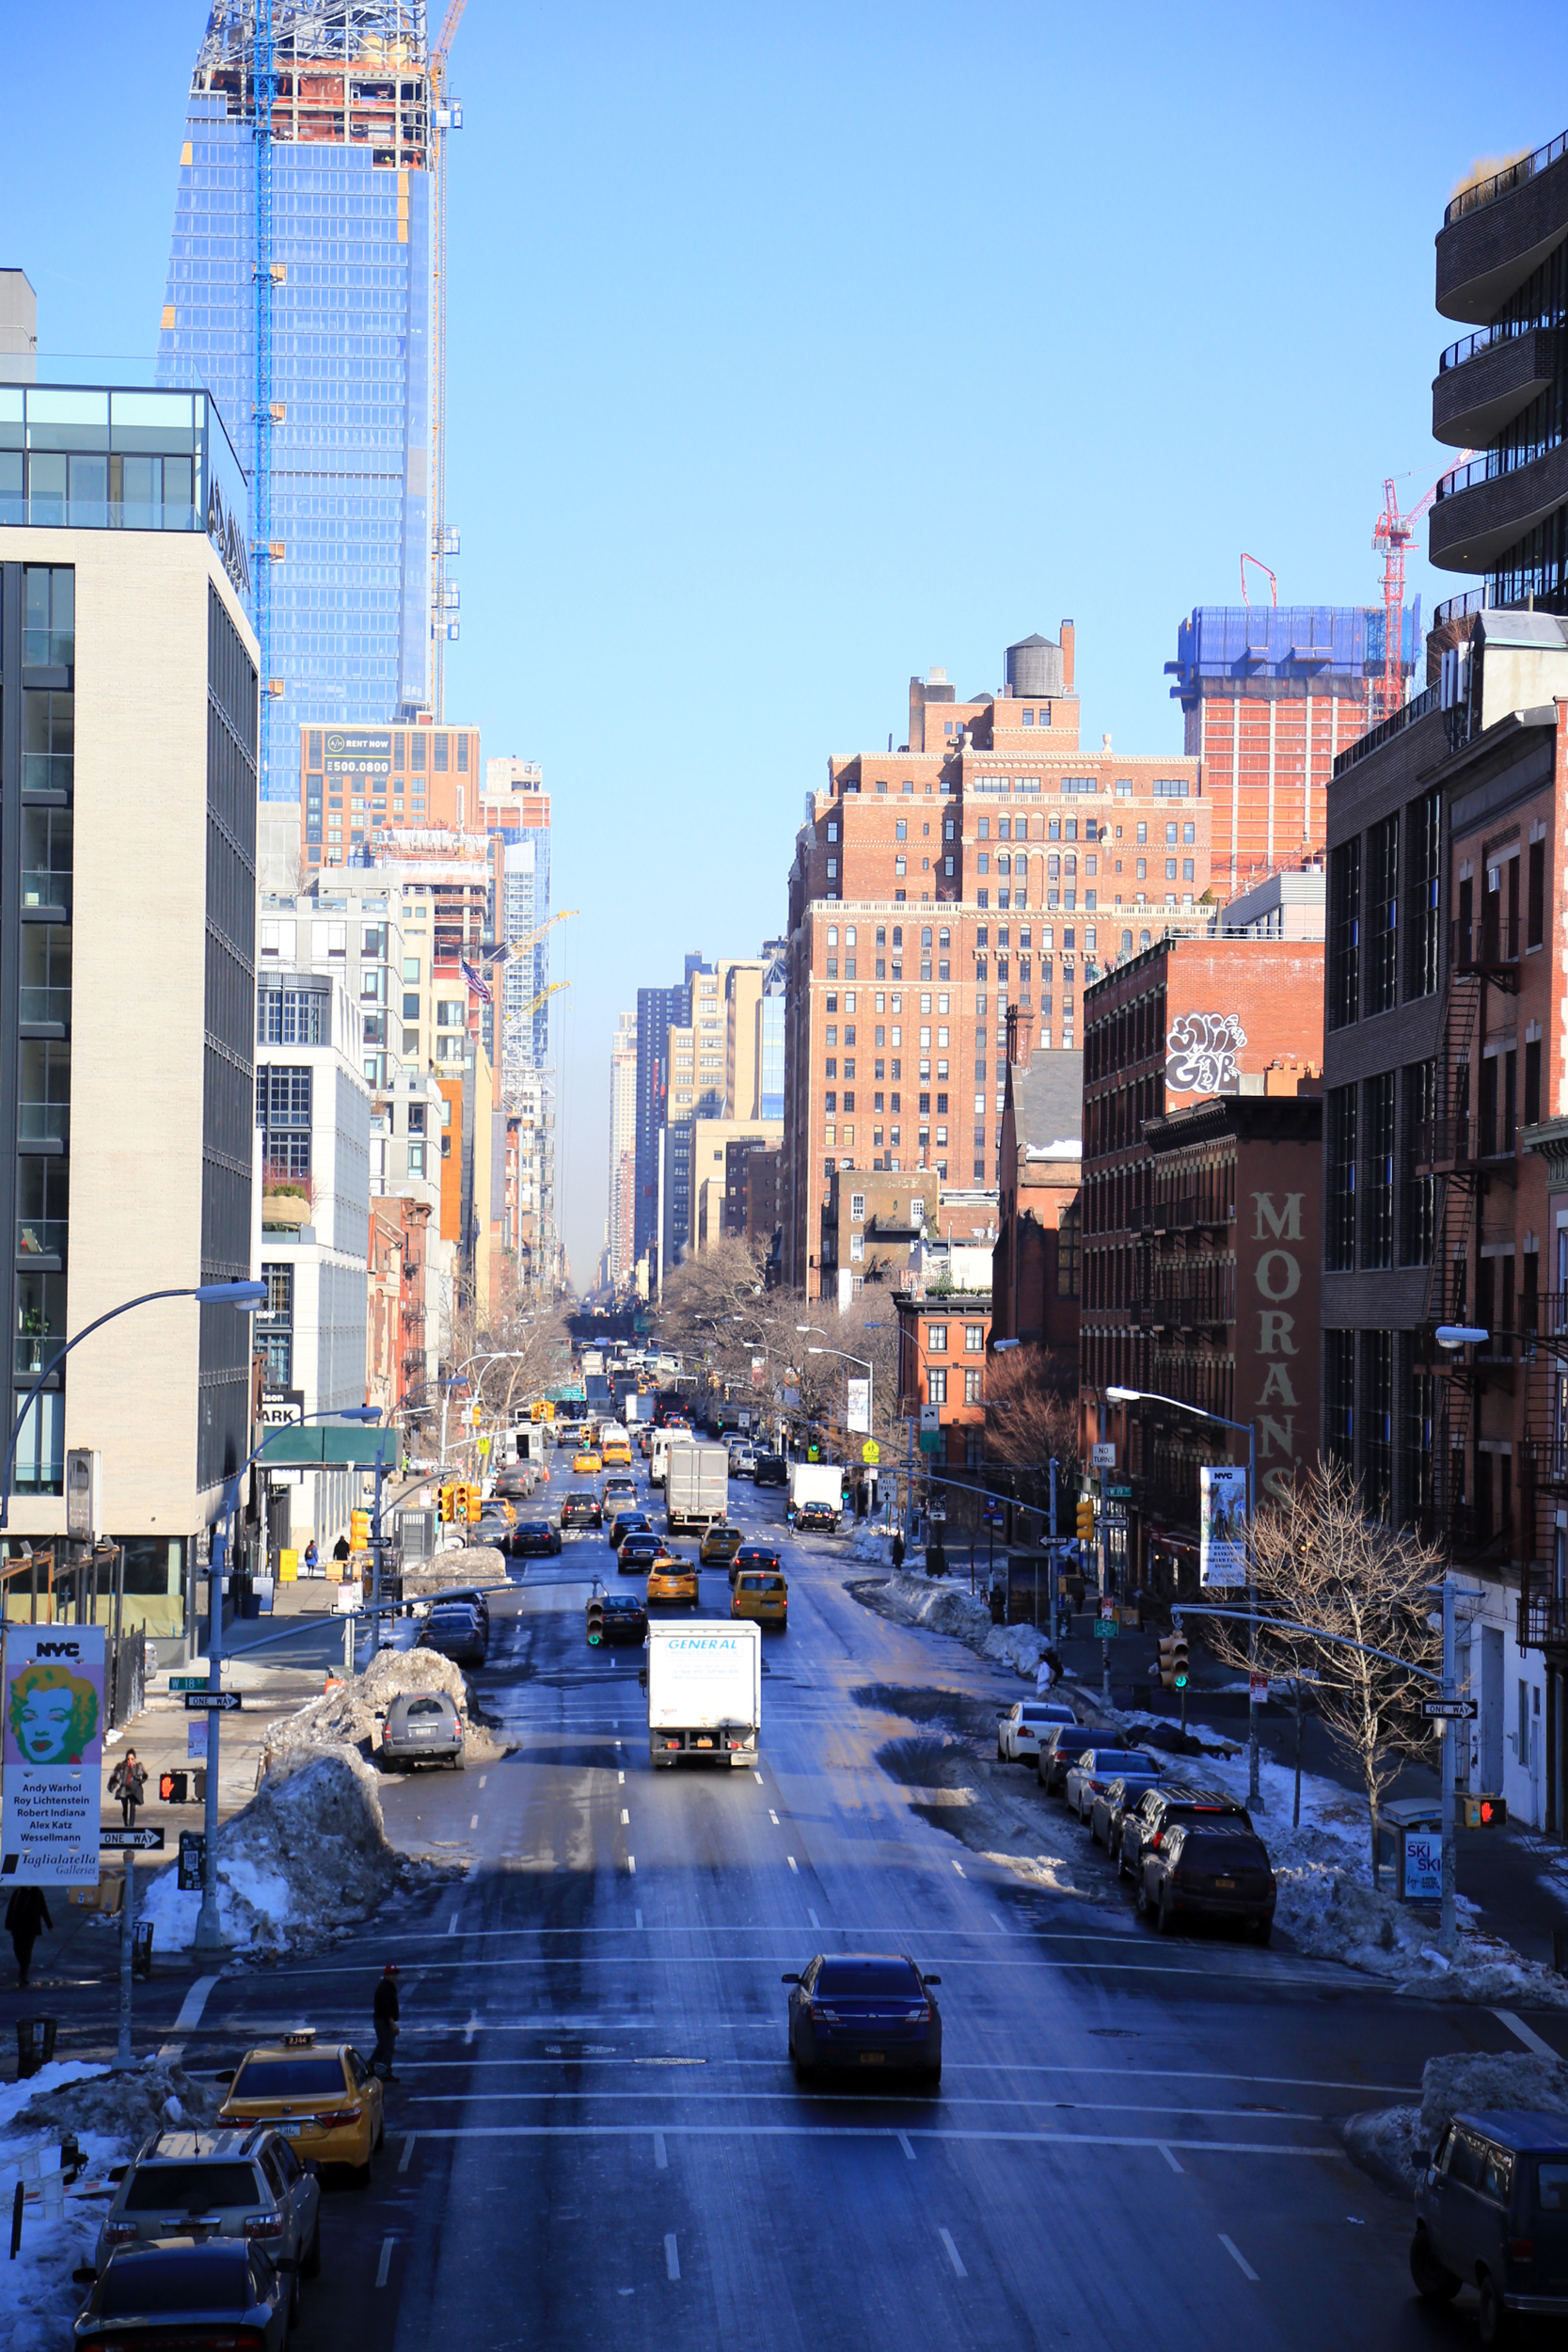 New-York Street-view